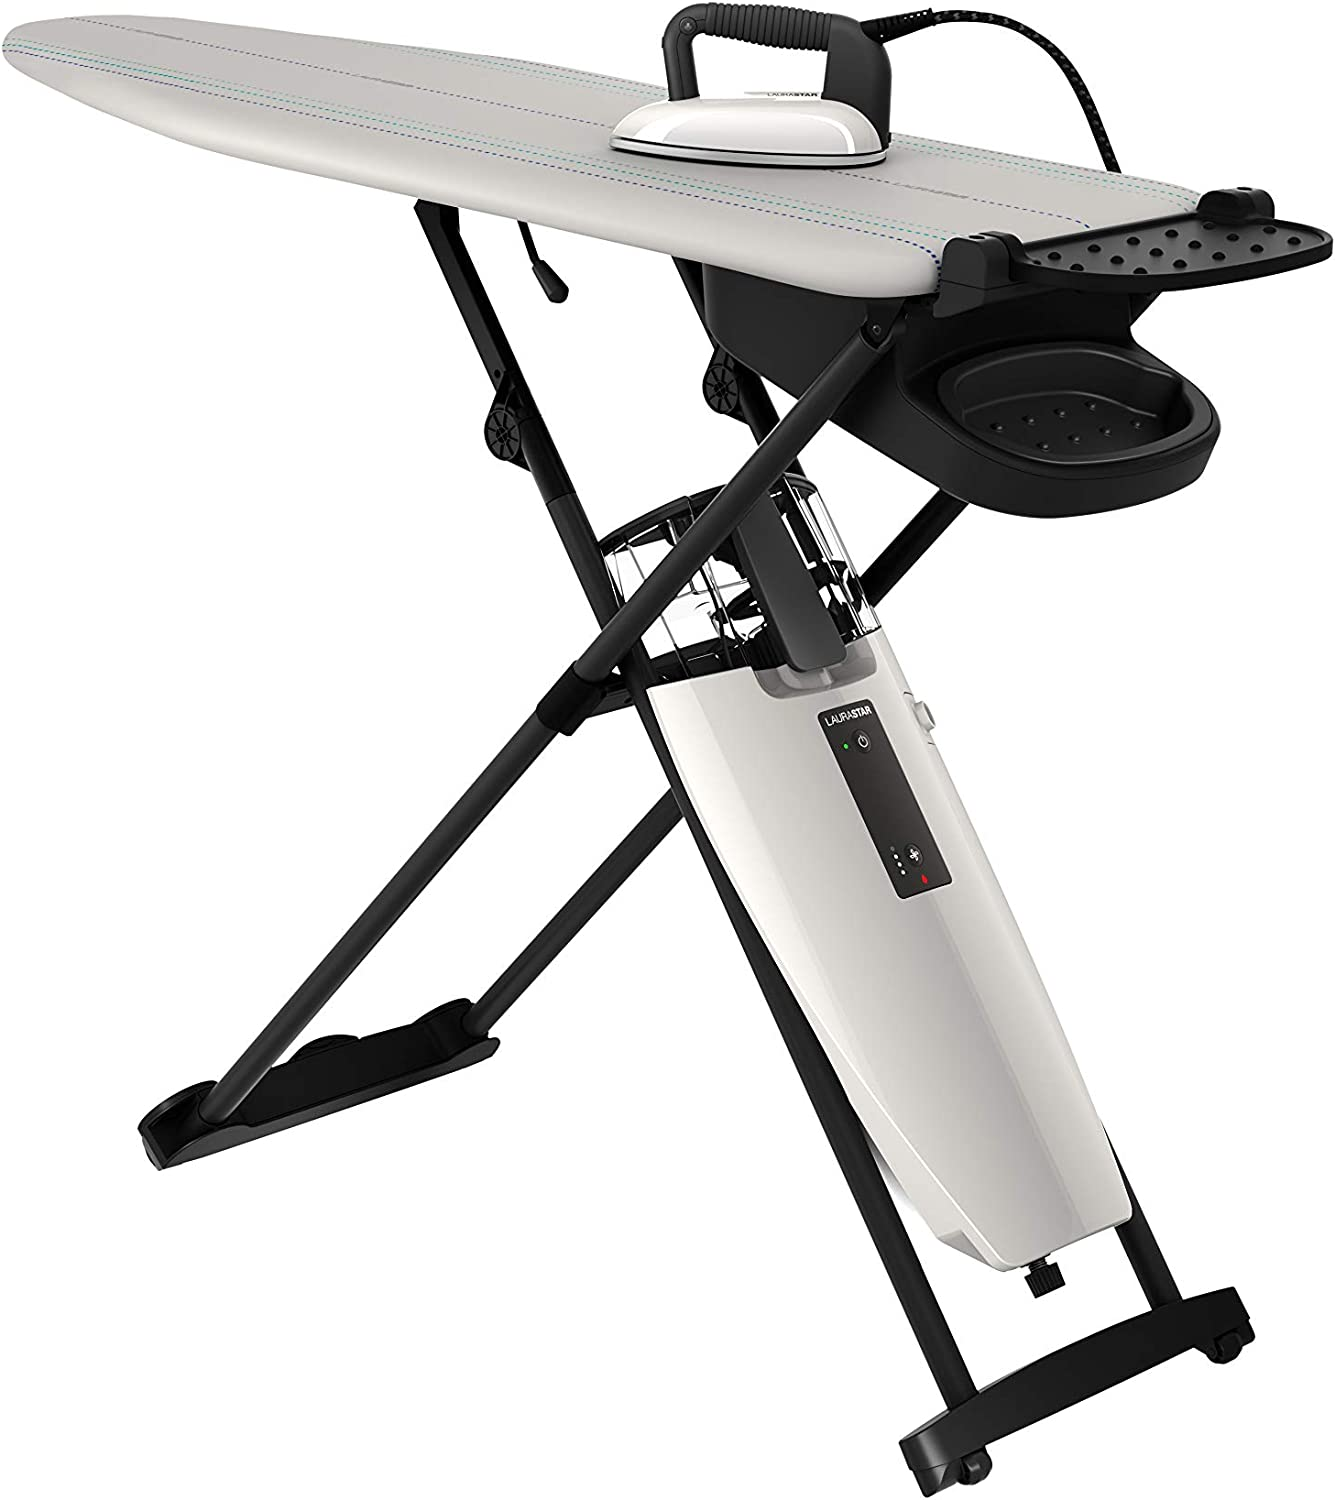 Laurastar Smart I All-In-One Ironing Al sold Popular product out. Microfine Hygie Dry System: